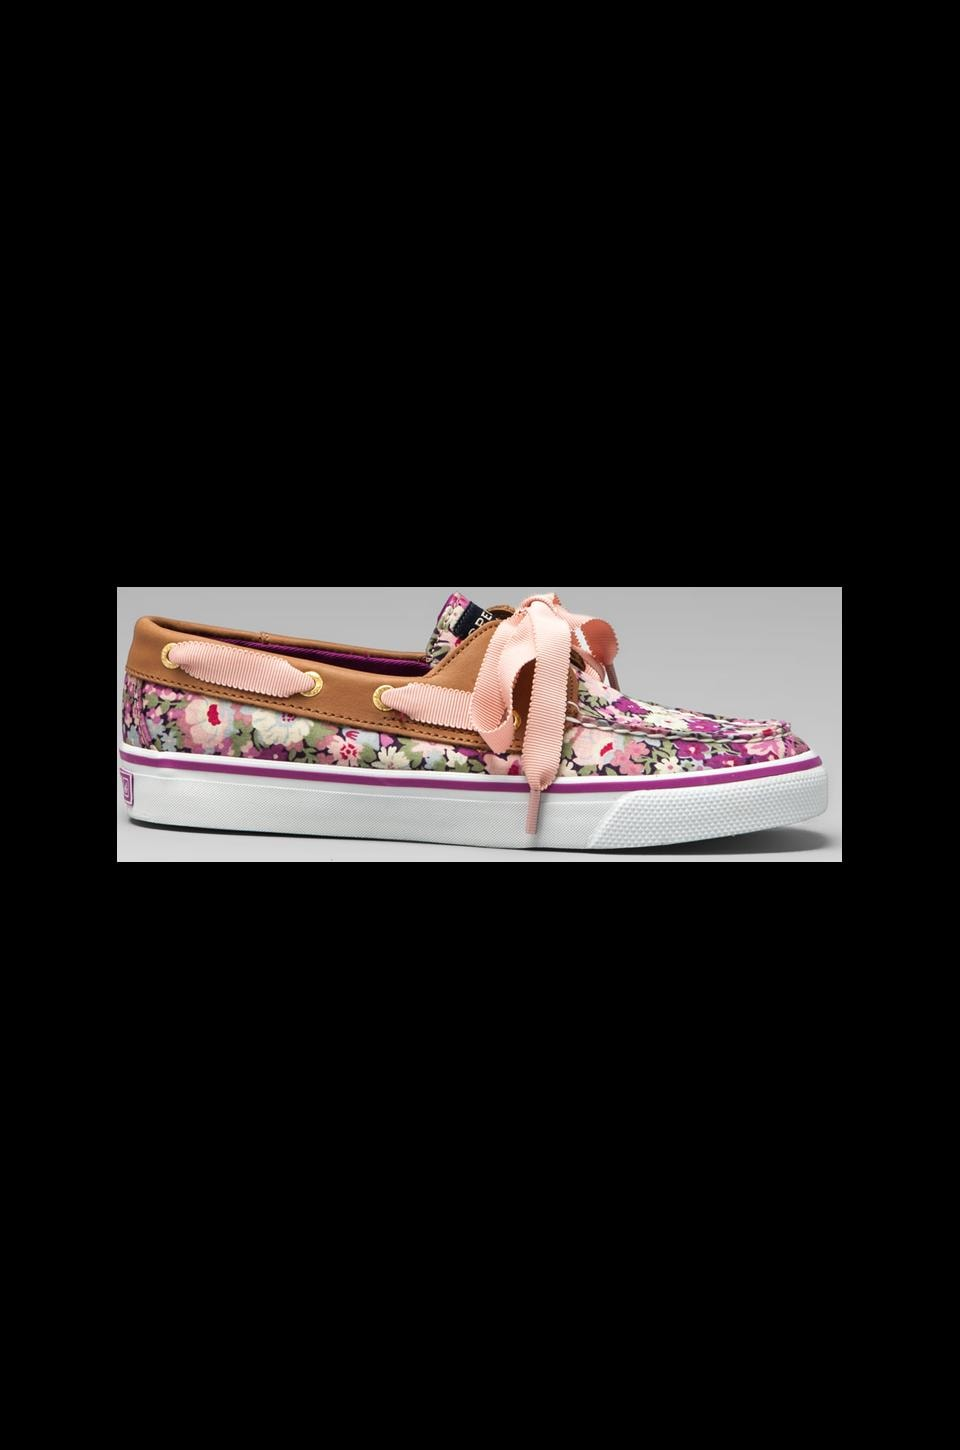 Sperry Top-Sider Bahama 2-Eye in Pink Liberty Floral